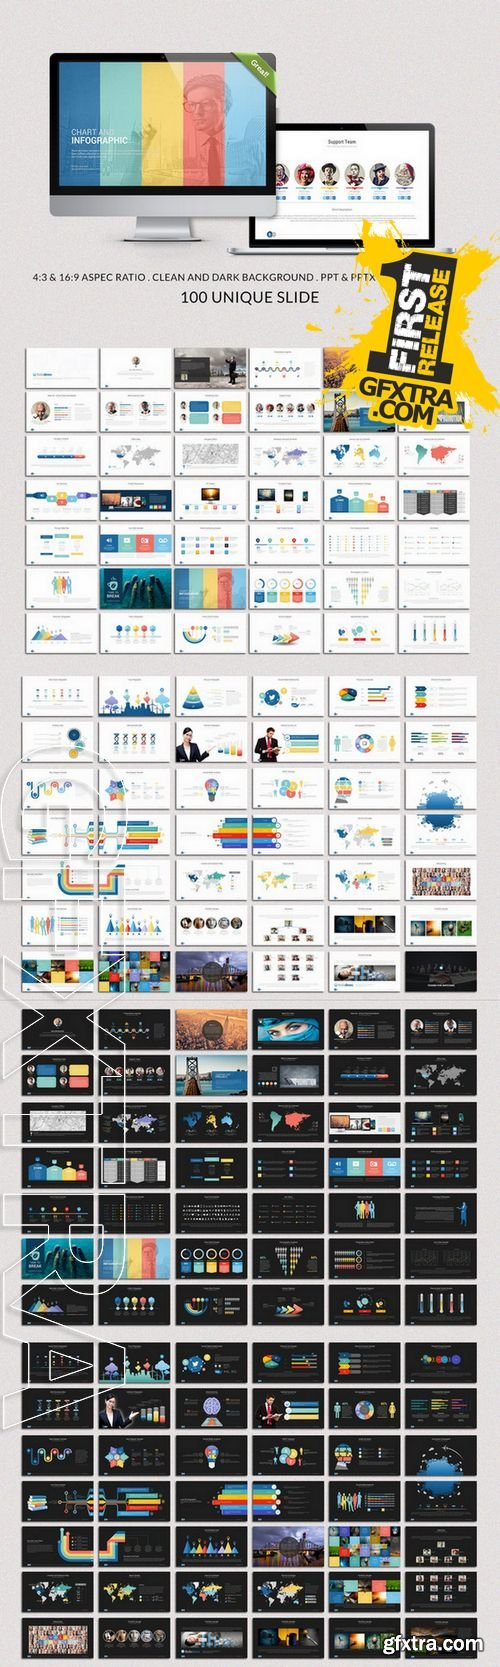 Bolodewo Powerpoint Template - CM 167086